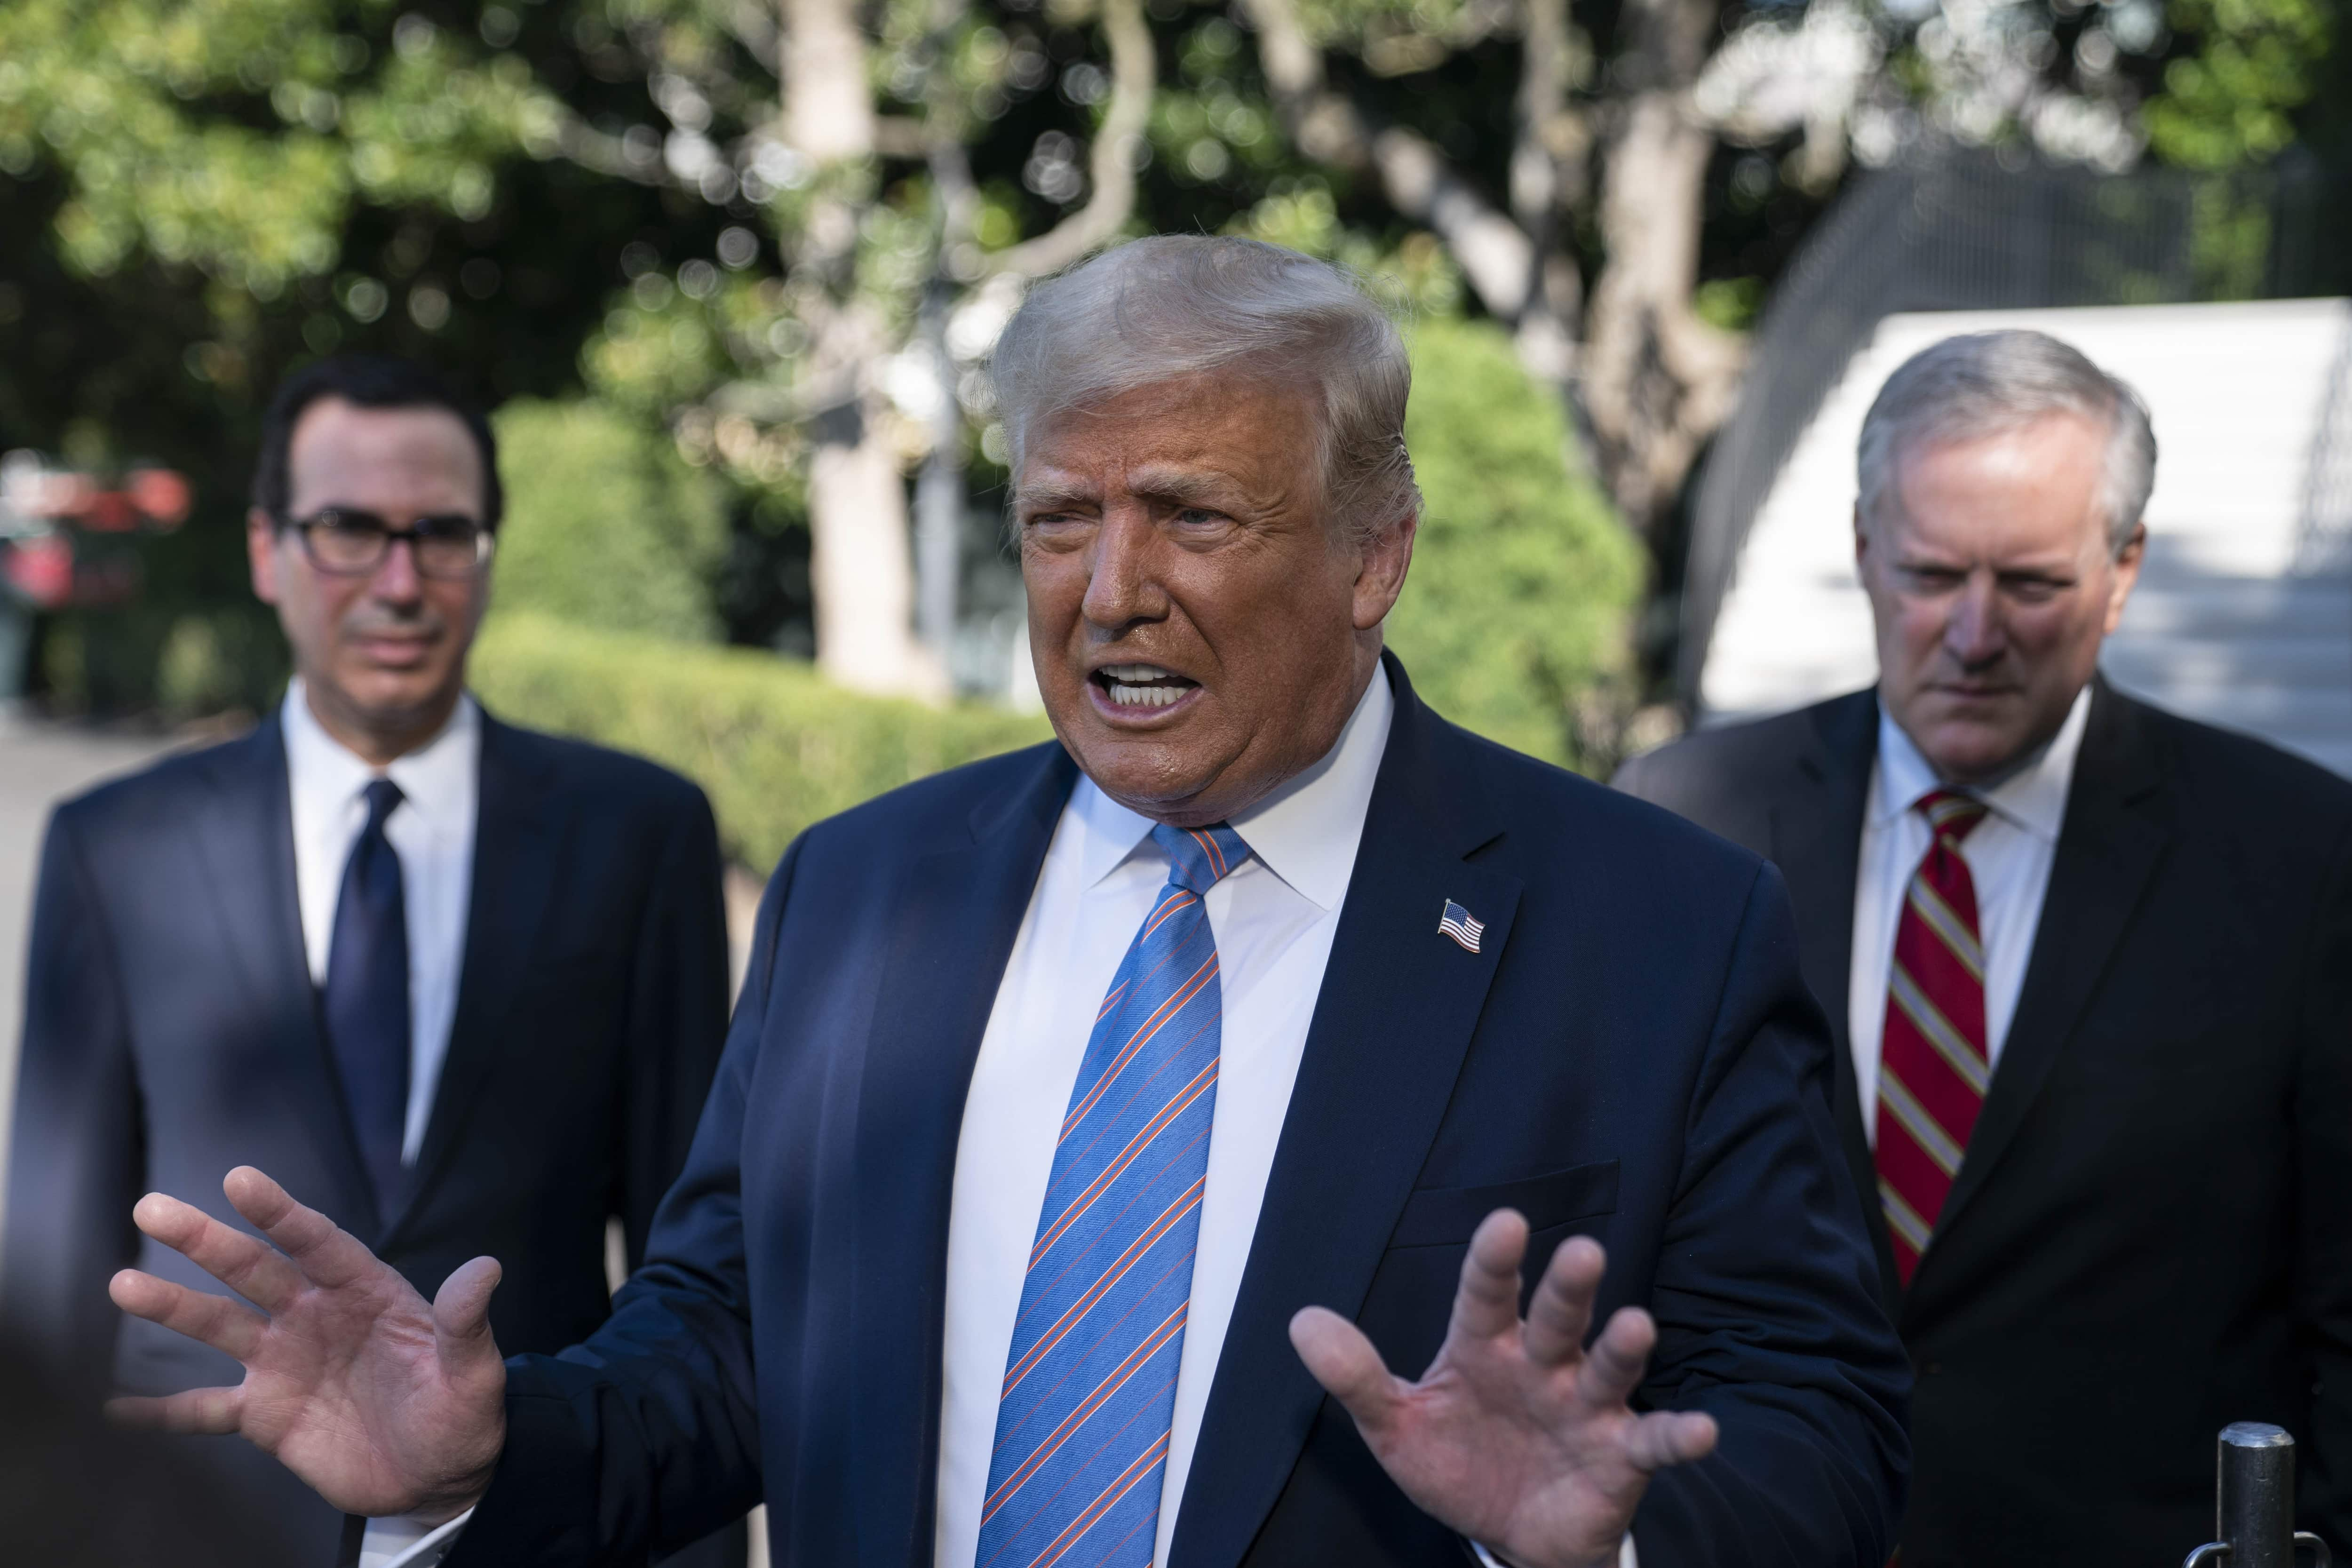 U.S. President Donald Trump speaks to members of the media as Steven Mnuchin, U.S. Treasury secretary, left, and Mark Meadows, White House chief of staff, right, listen before boarding Marine One on the South Lawn of the White House in Washington, D.C., U.S., on Wednesday, July 29, 2020. Trump will look to deep-pocketed energy barons to help jump start his sputtering re-election campaign today during a stop in Texas, a traditional Republican bastion that has become increasingly competitive for Democrats. Photographer: Sarah Silbiger/UPI/Bloomberg (Bloomberg)